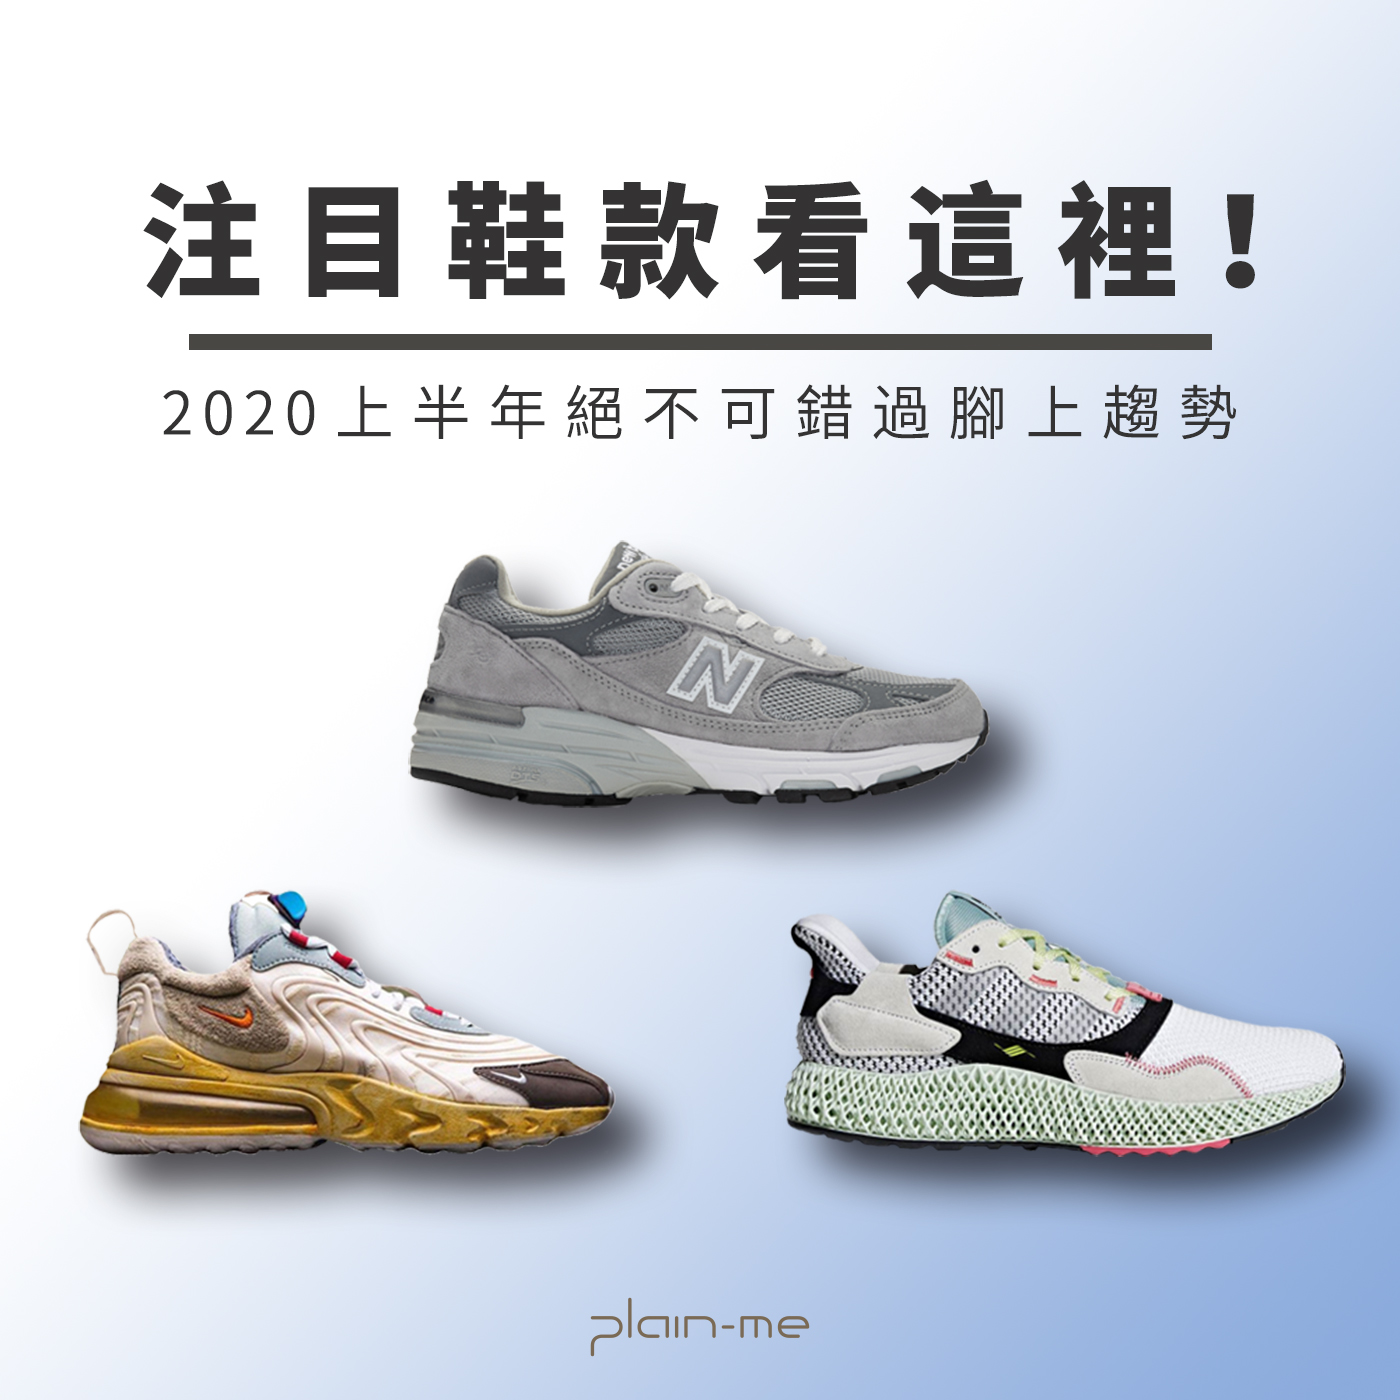 籃球鞋,球鞋趨勢,2020球鞋,2020鞋款,鞋款,球鞋,Adidas Ultra 4D,Travis Scott x Nike Air Max 270 React,AURALEE New Balance COMP 100,New Balance M992